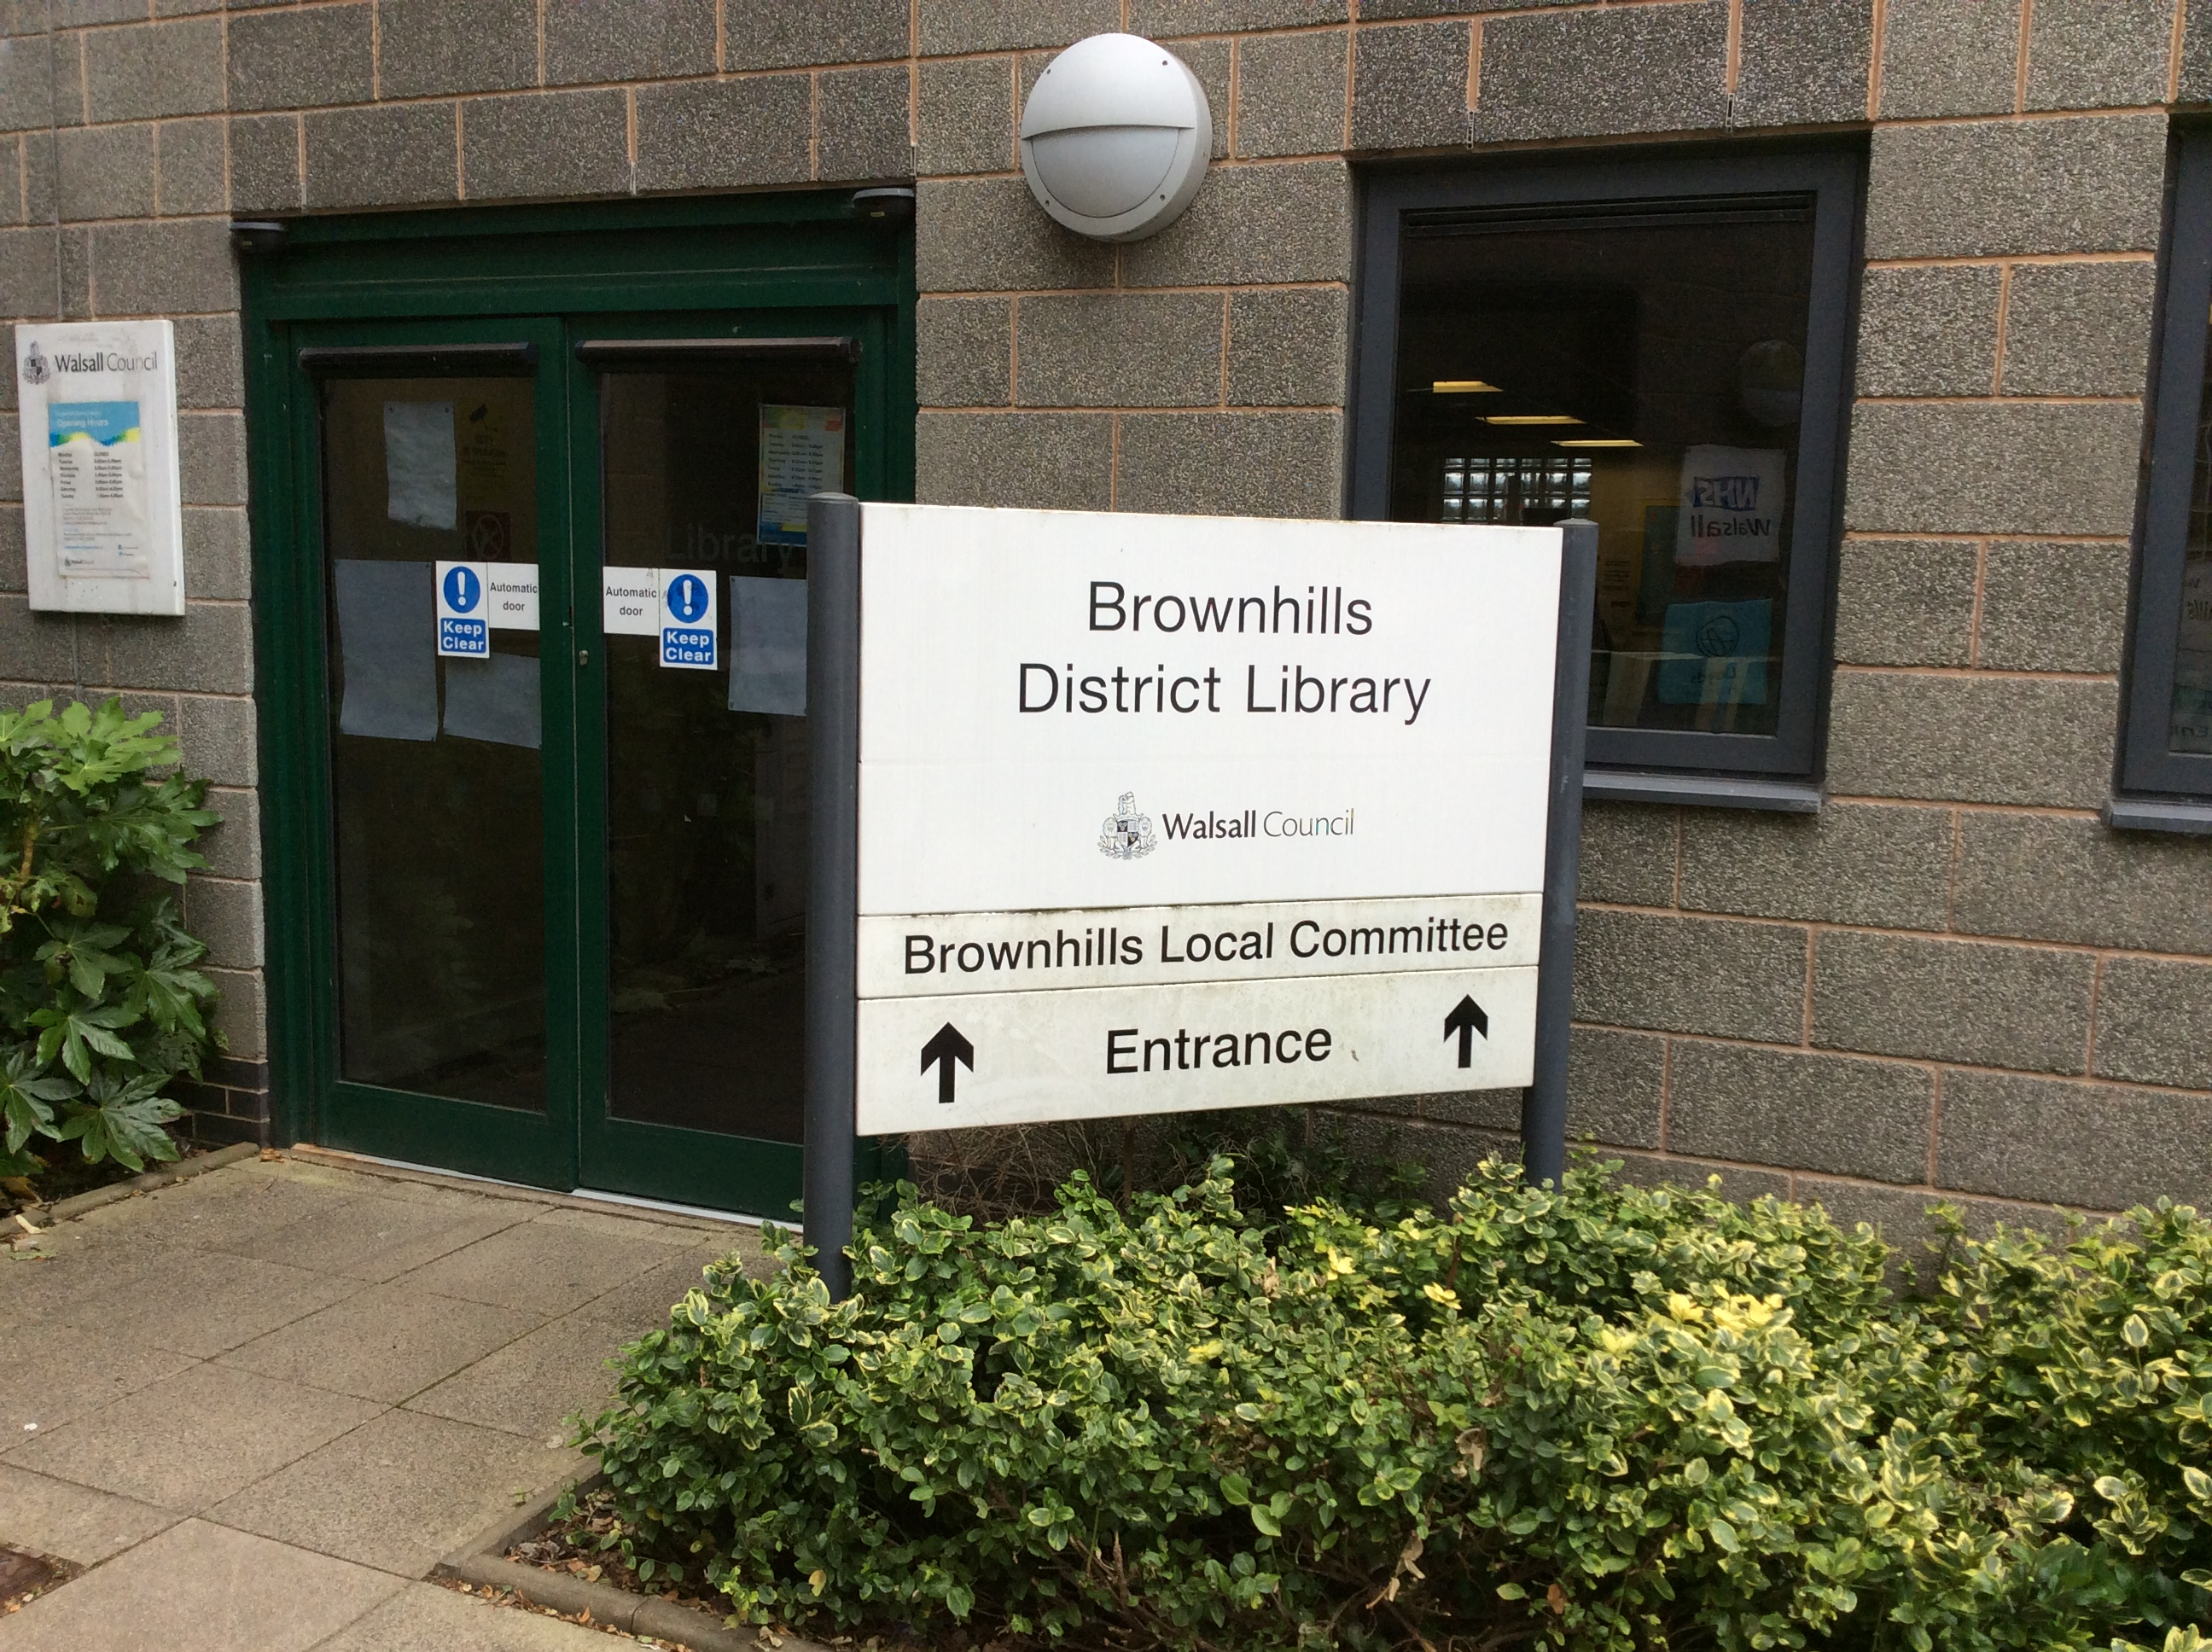 Brownhills District Library